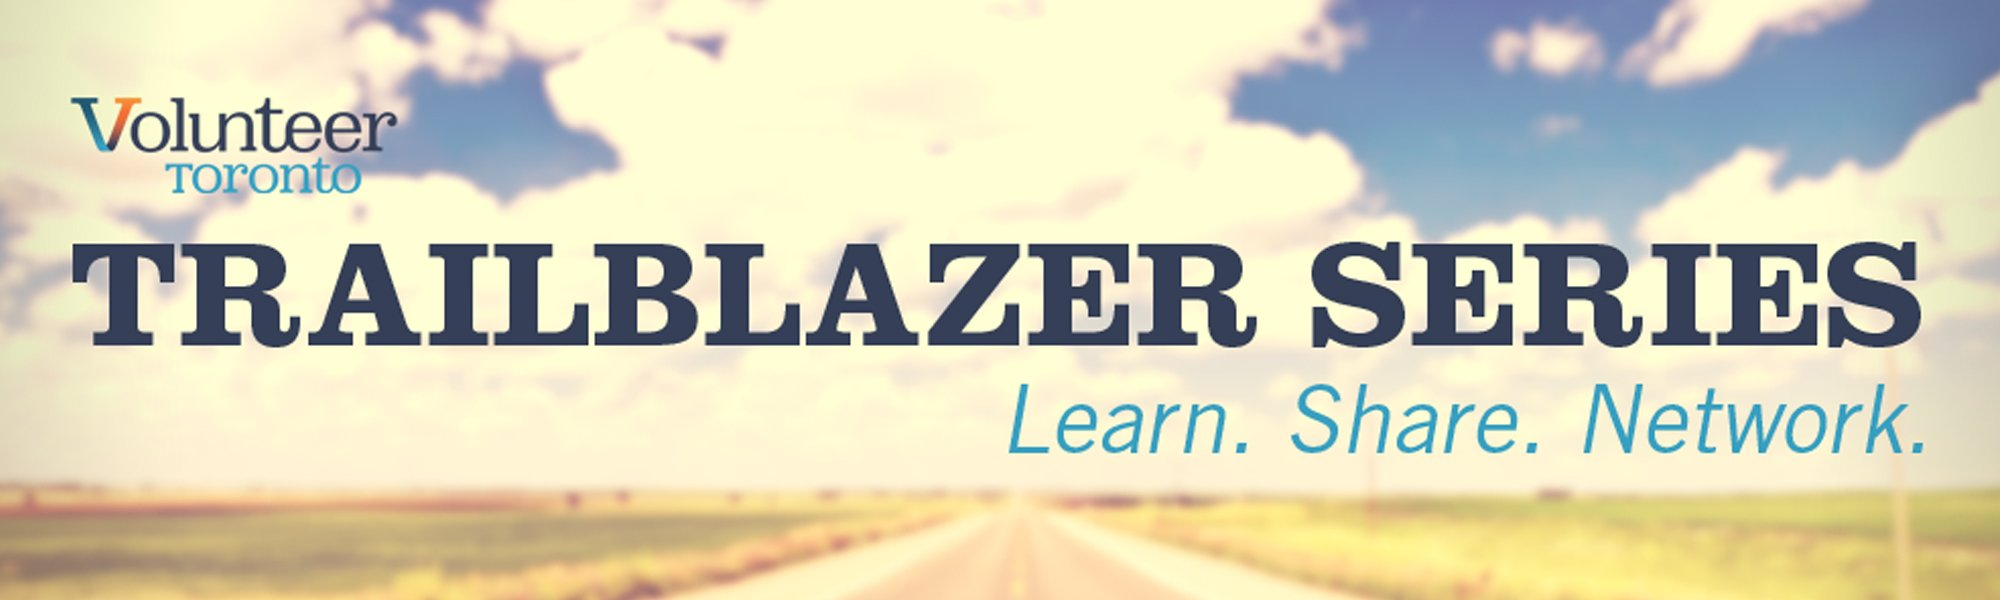 Trailblazer Series Header